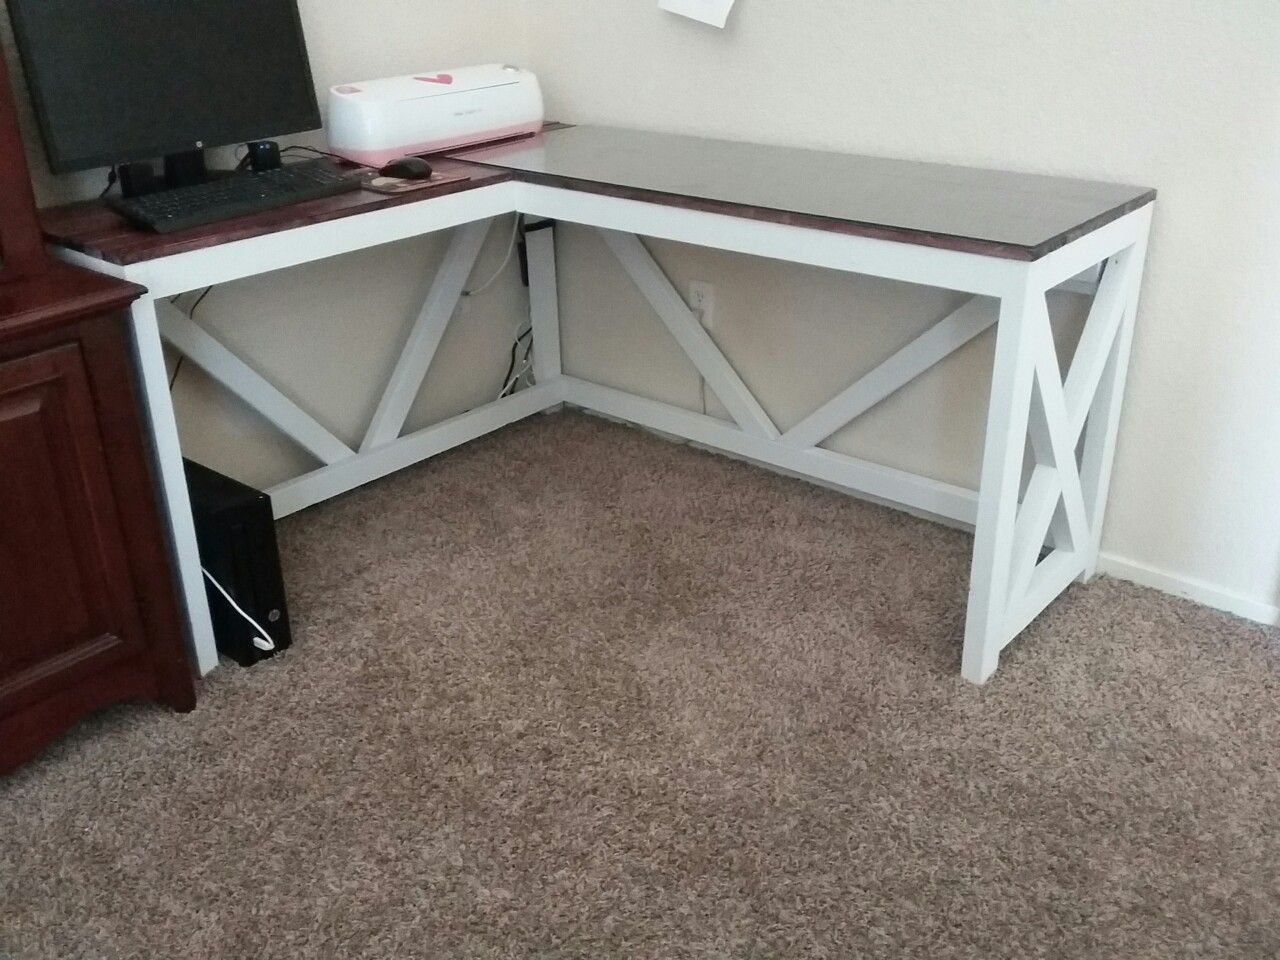 12 Clever Tricks Of How To Build L Shaped Rustic Desk Diy Corner Desk L Shaped Desk Rustic Desk